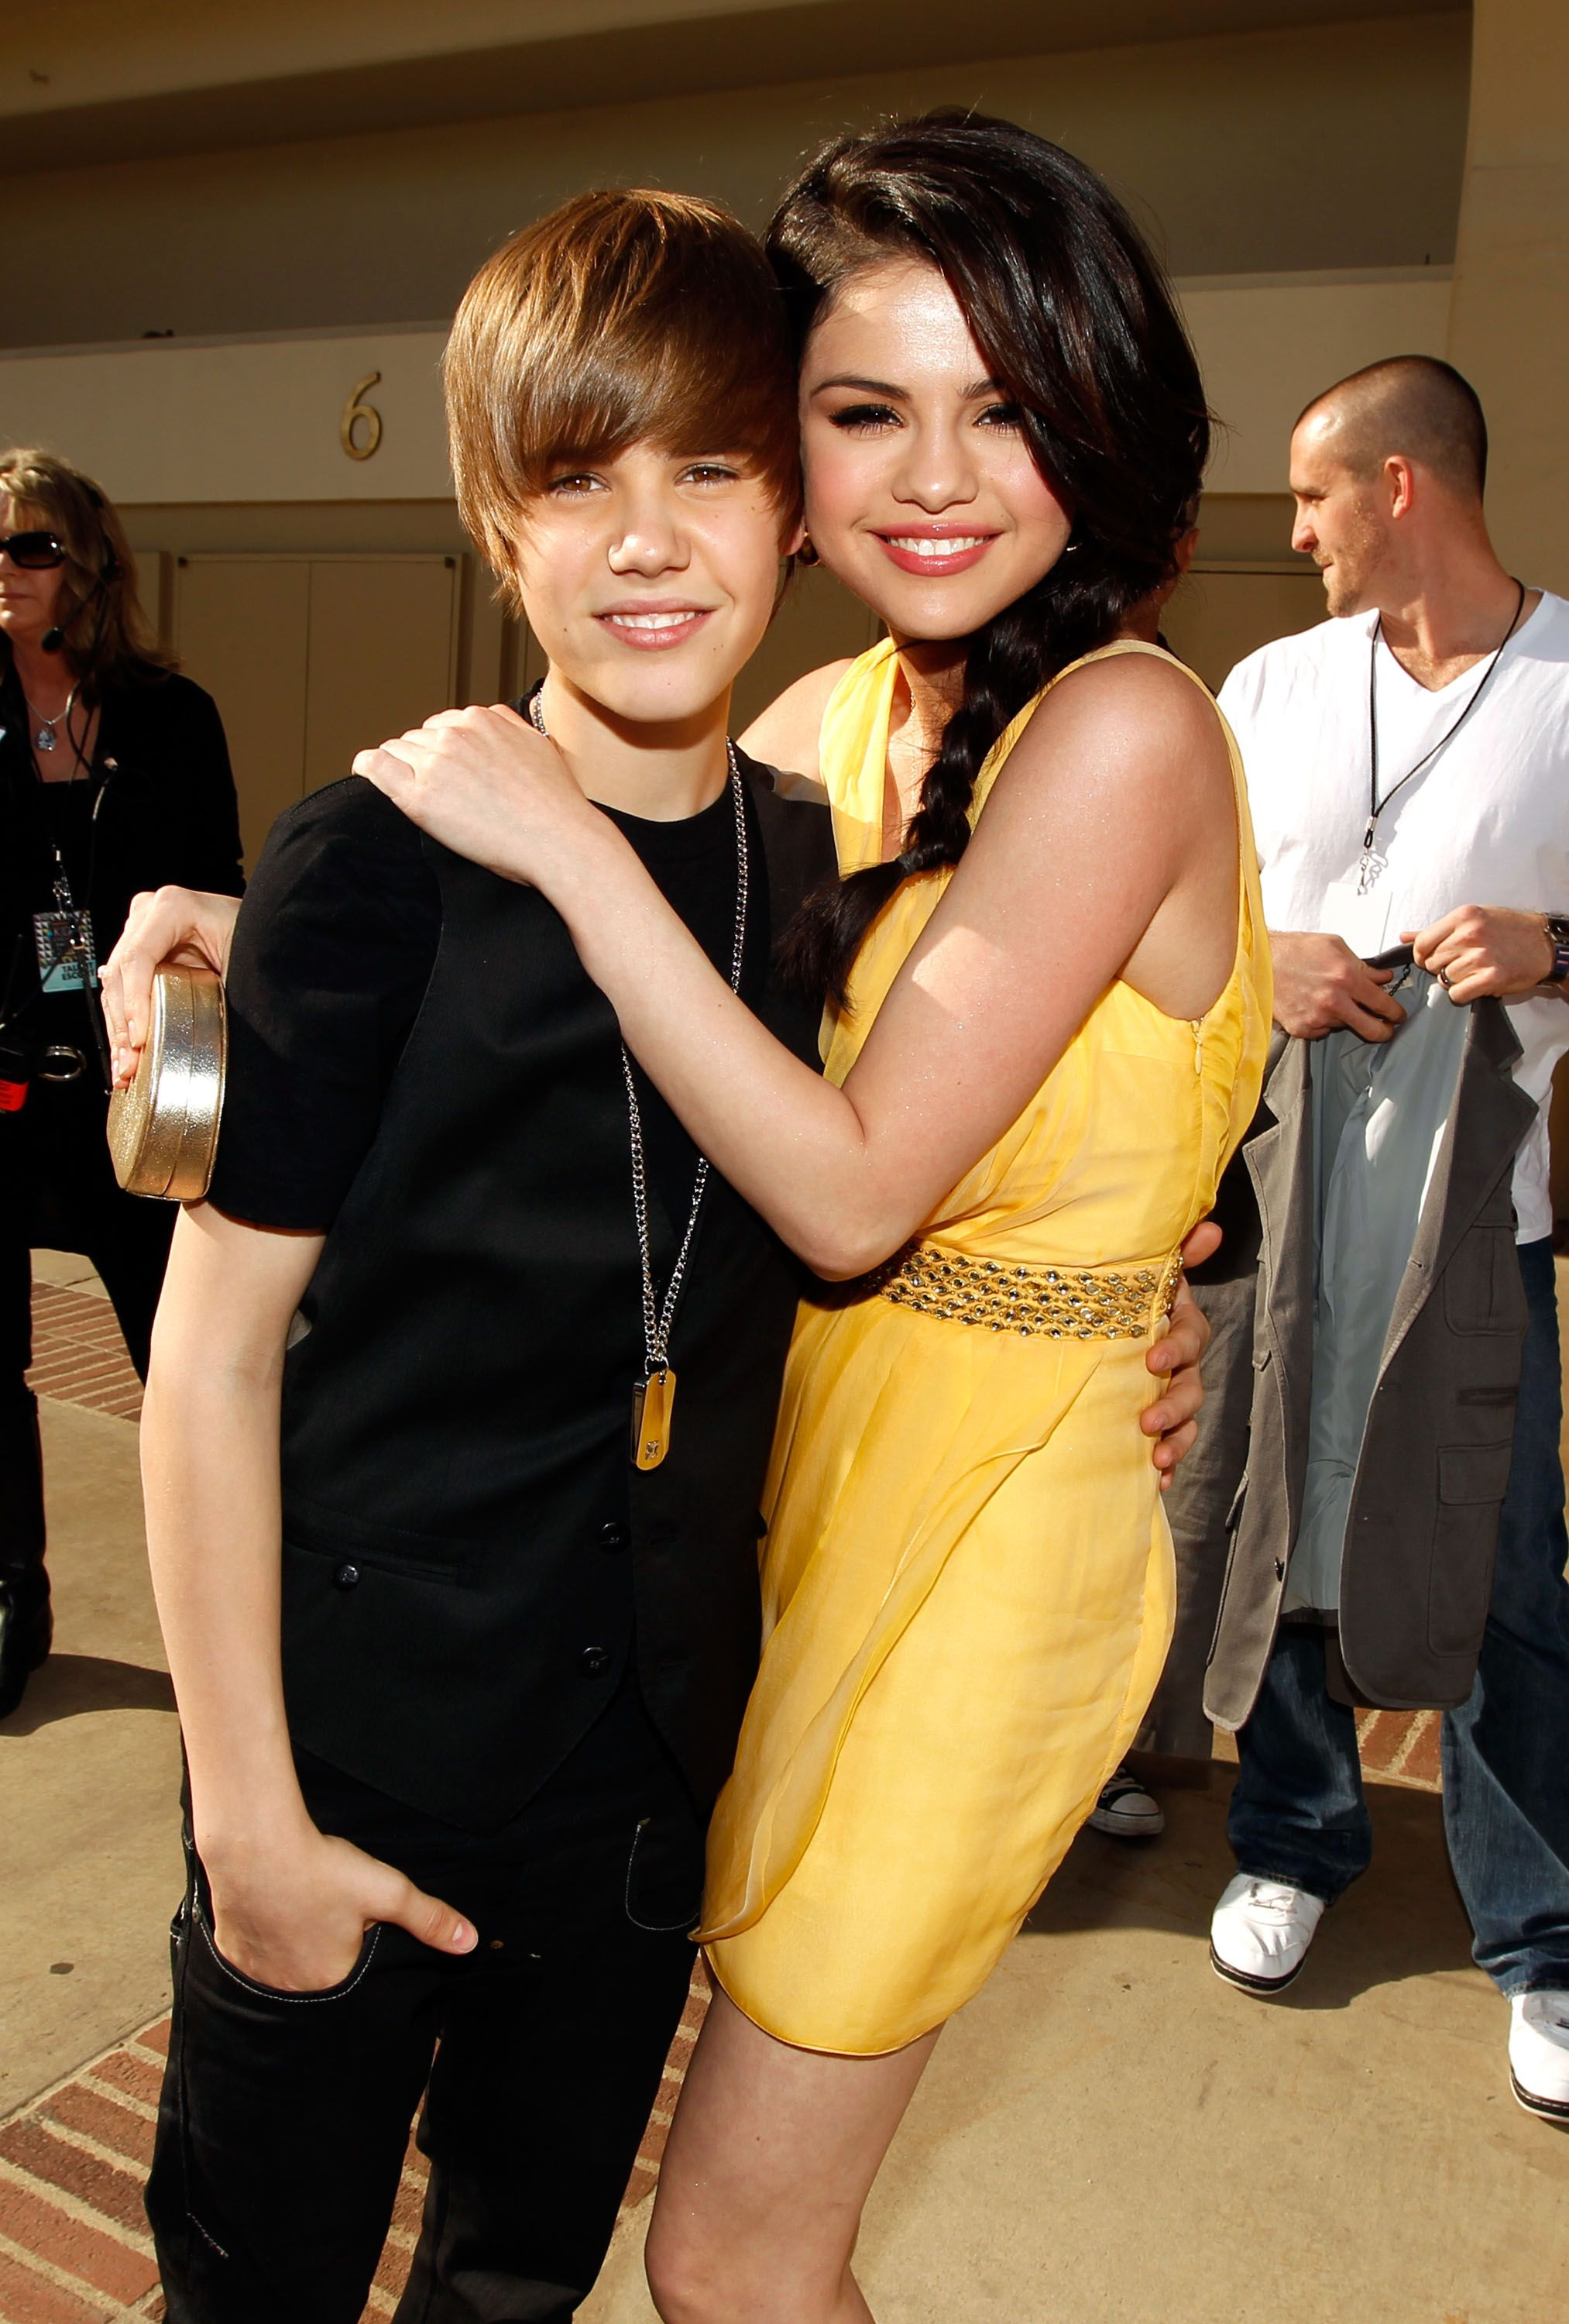 Is Selena Gomez And Justin Bieber Still Hookup 2018